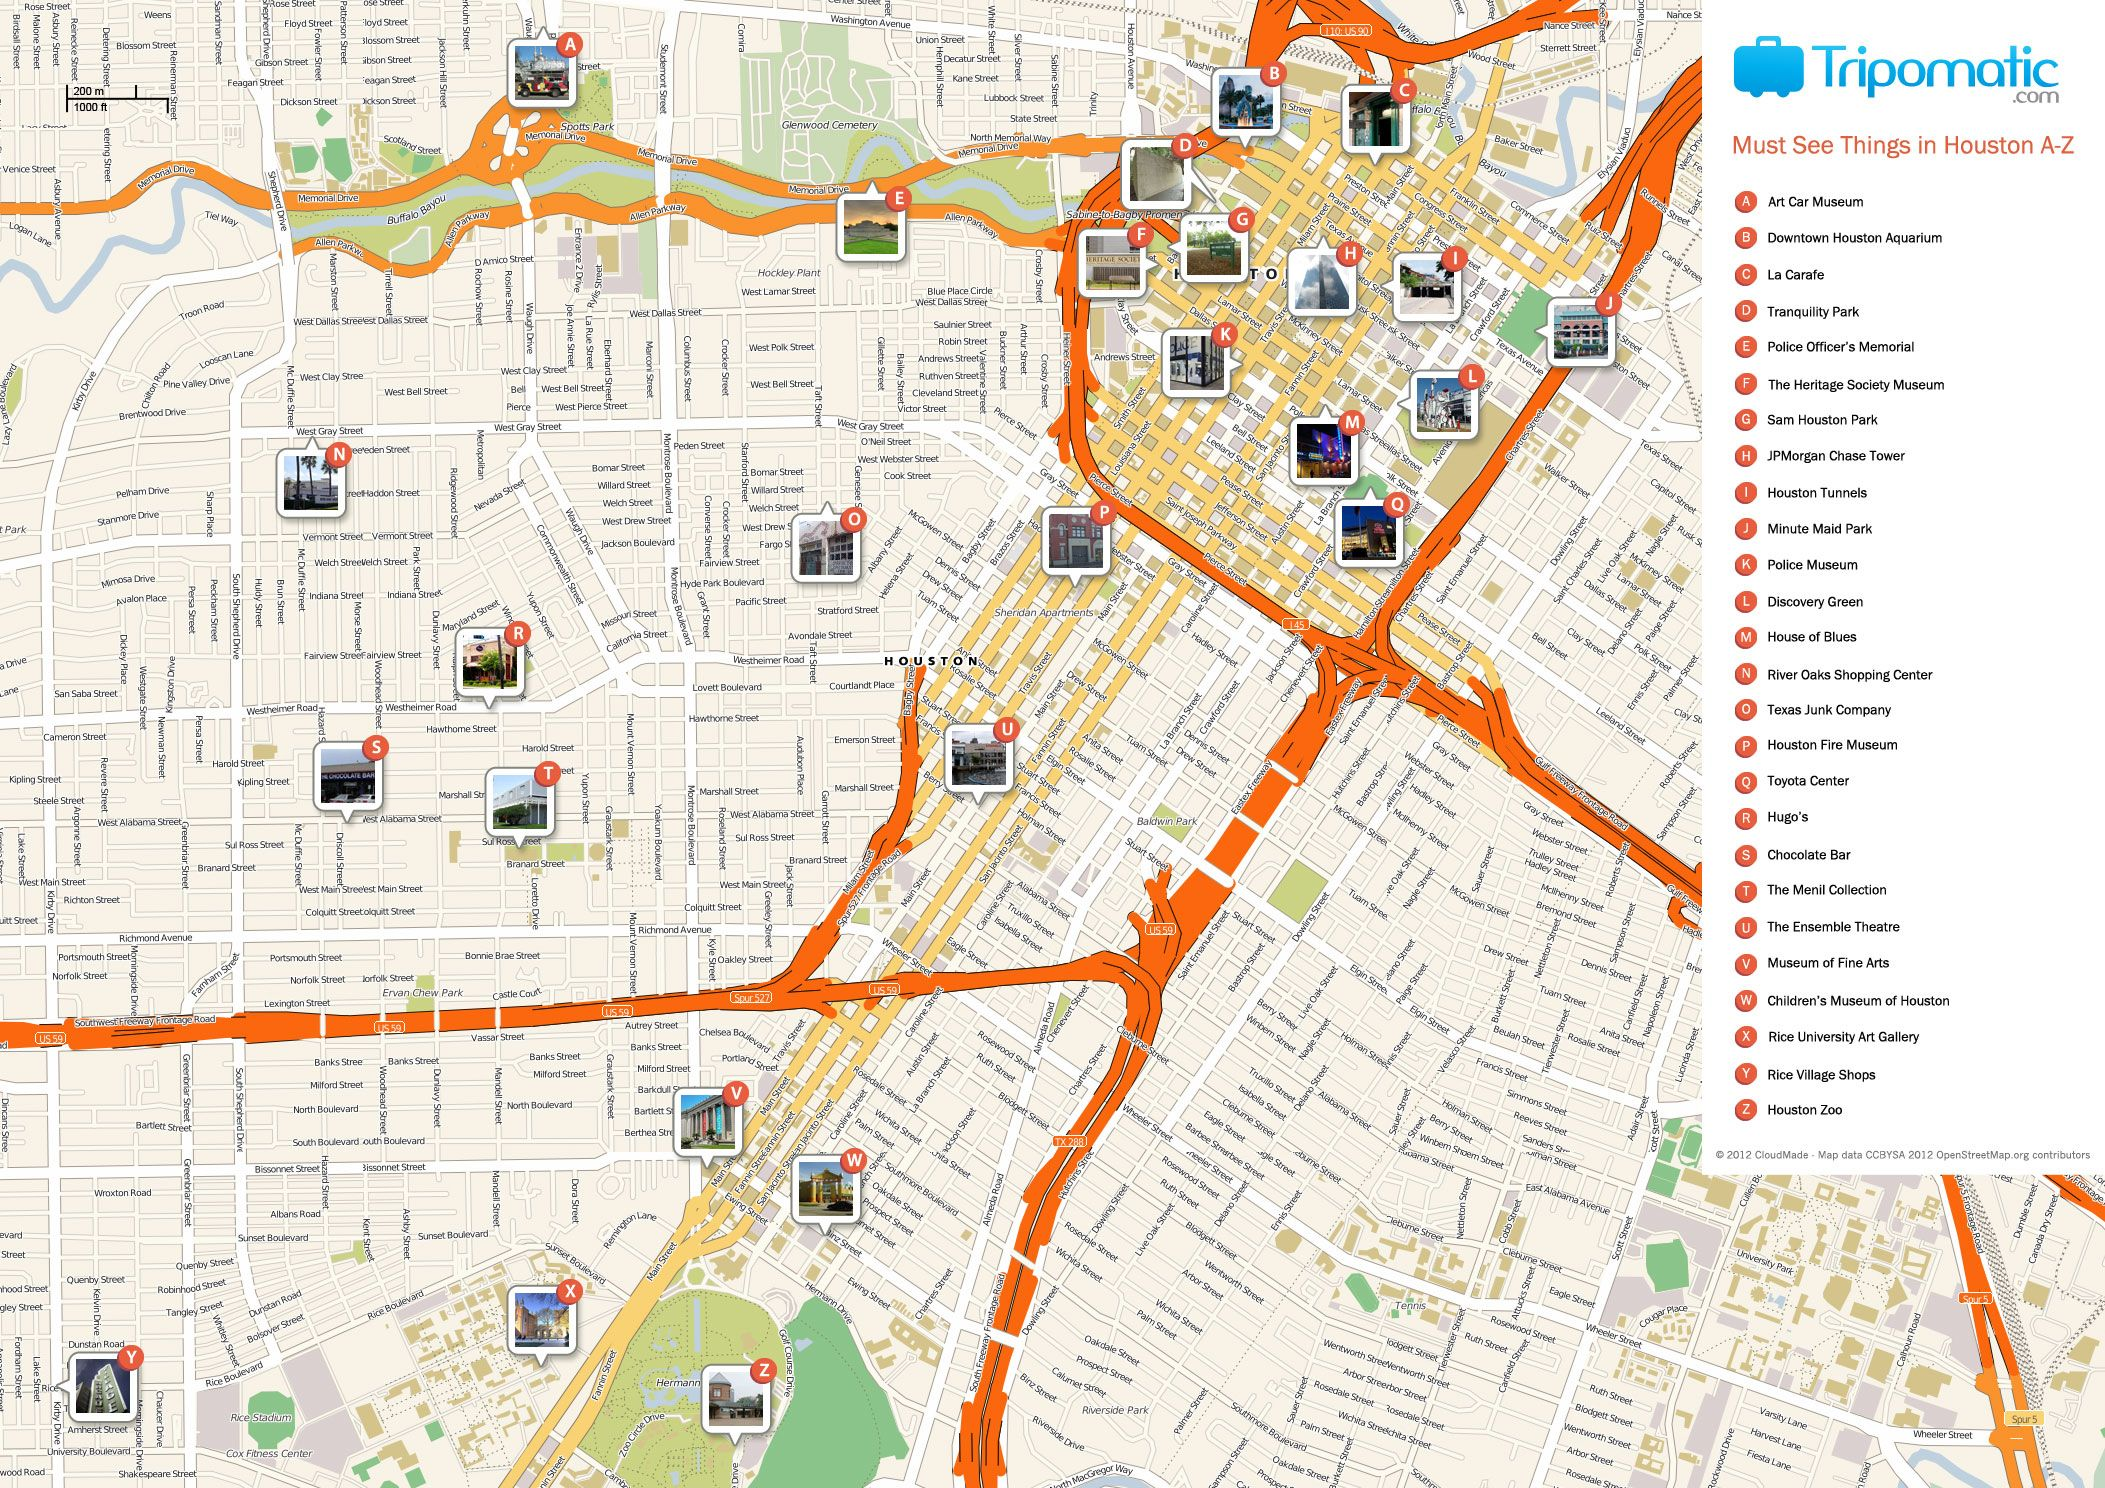 Houston Printable Tourist Map Houston attractions Tourist map and